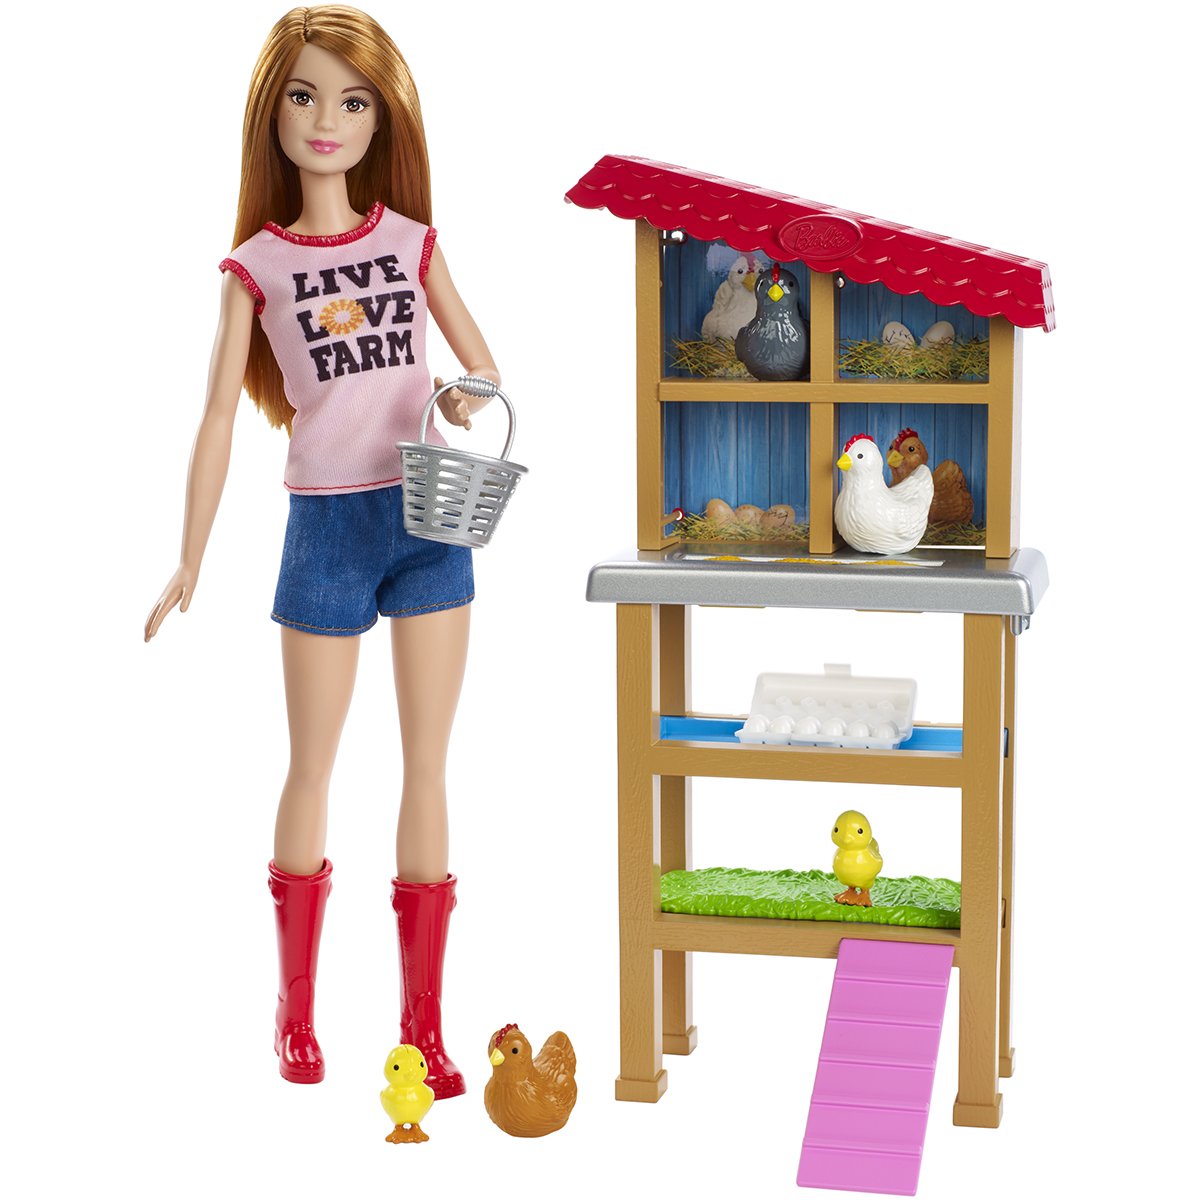 Set de joaca Barbie, Fermier, FXP15